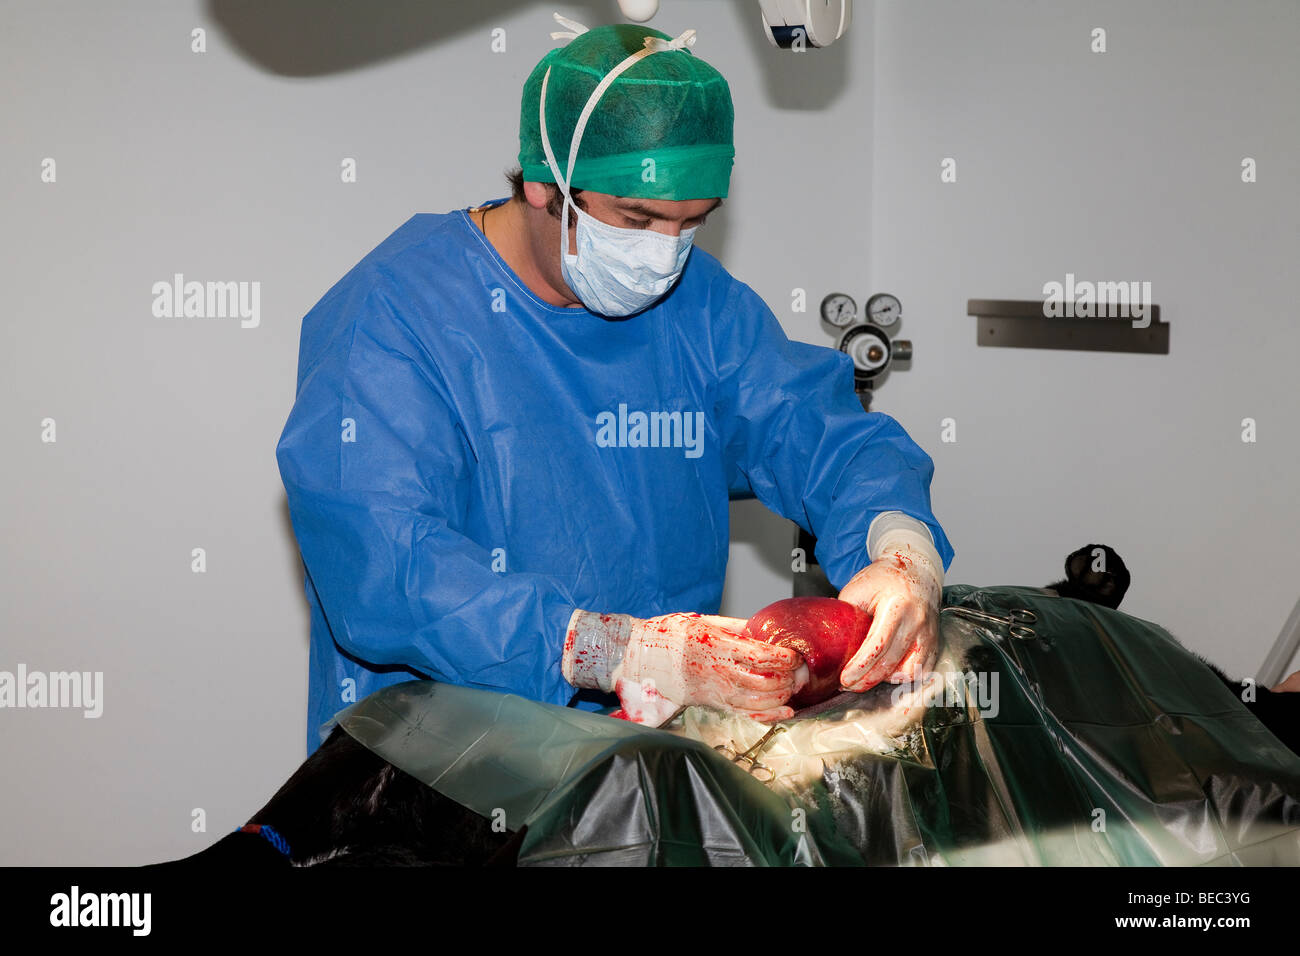 Veterinary Surgeon Operating on a Dog in Theatre - Stock Image